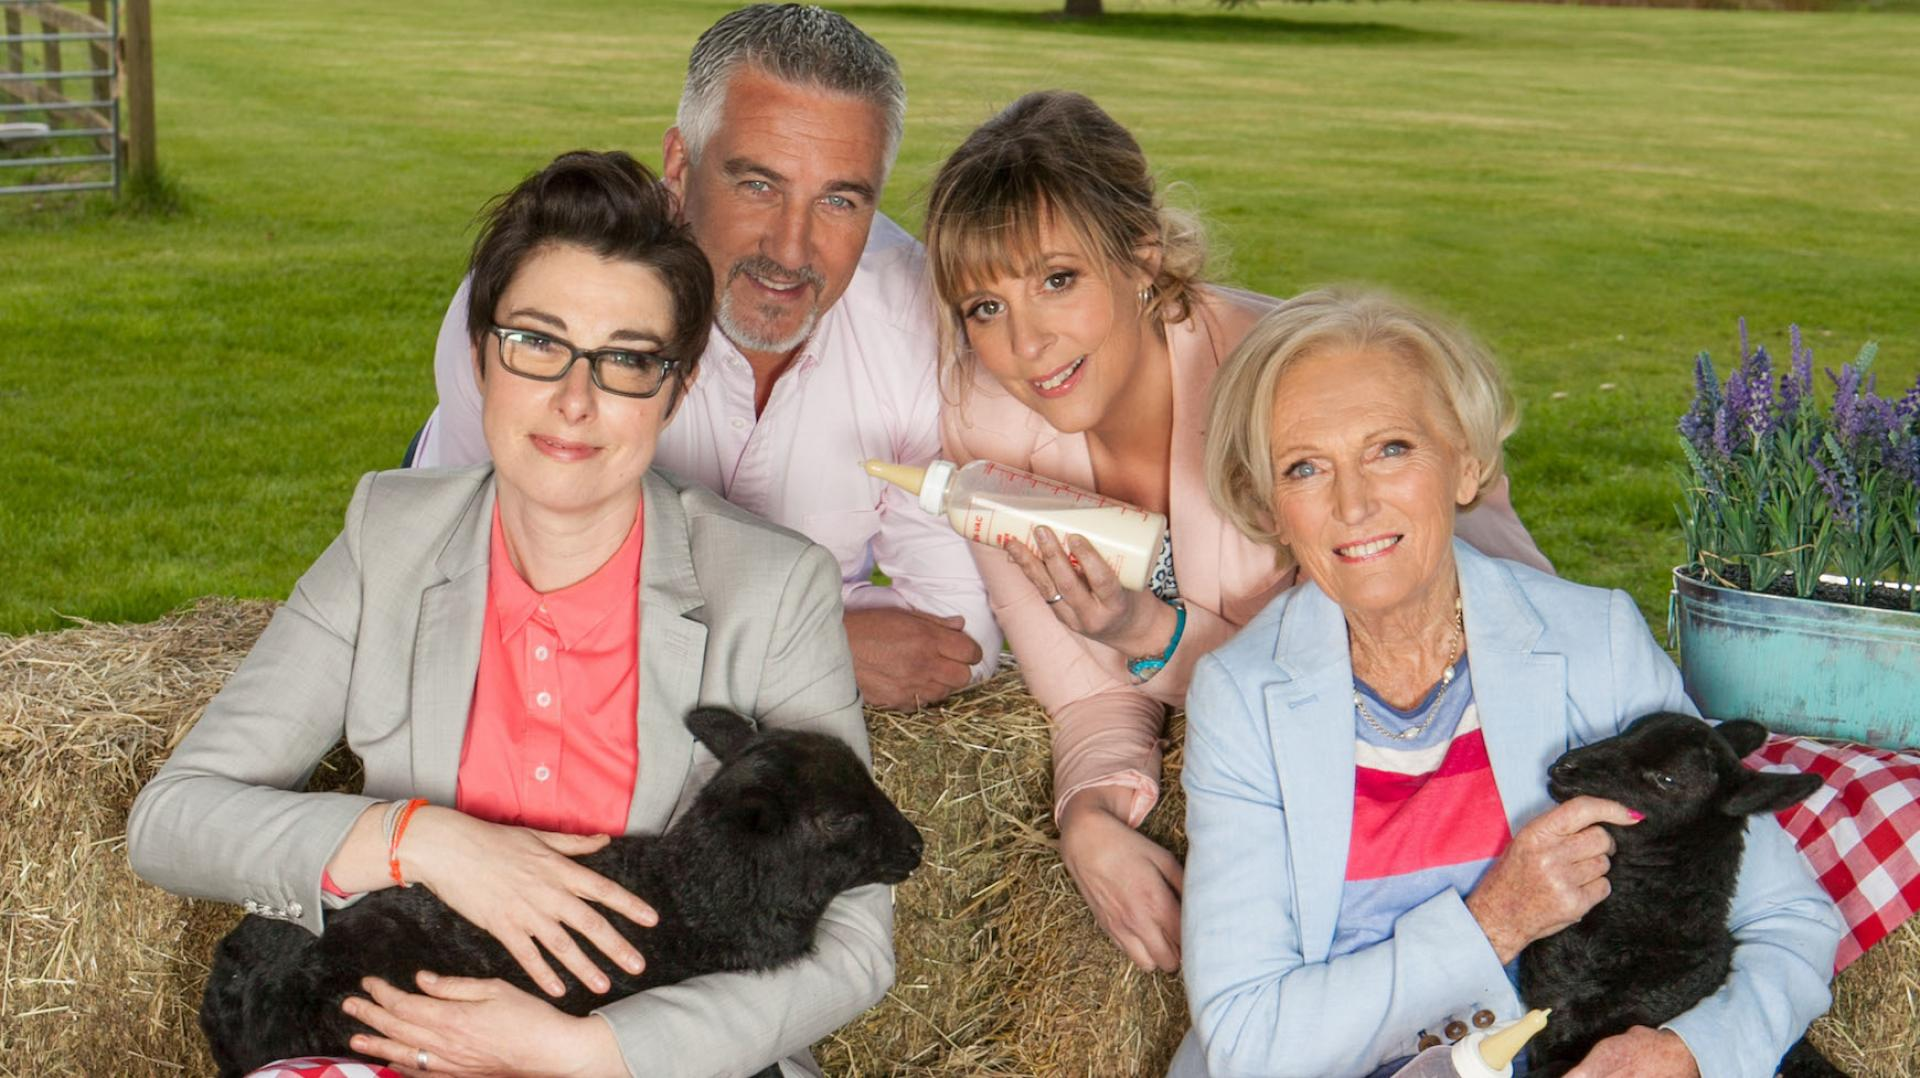 Pbs Great British Baking Show 2020.The Great British Bake Off The Changes Explained Telly